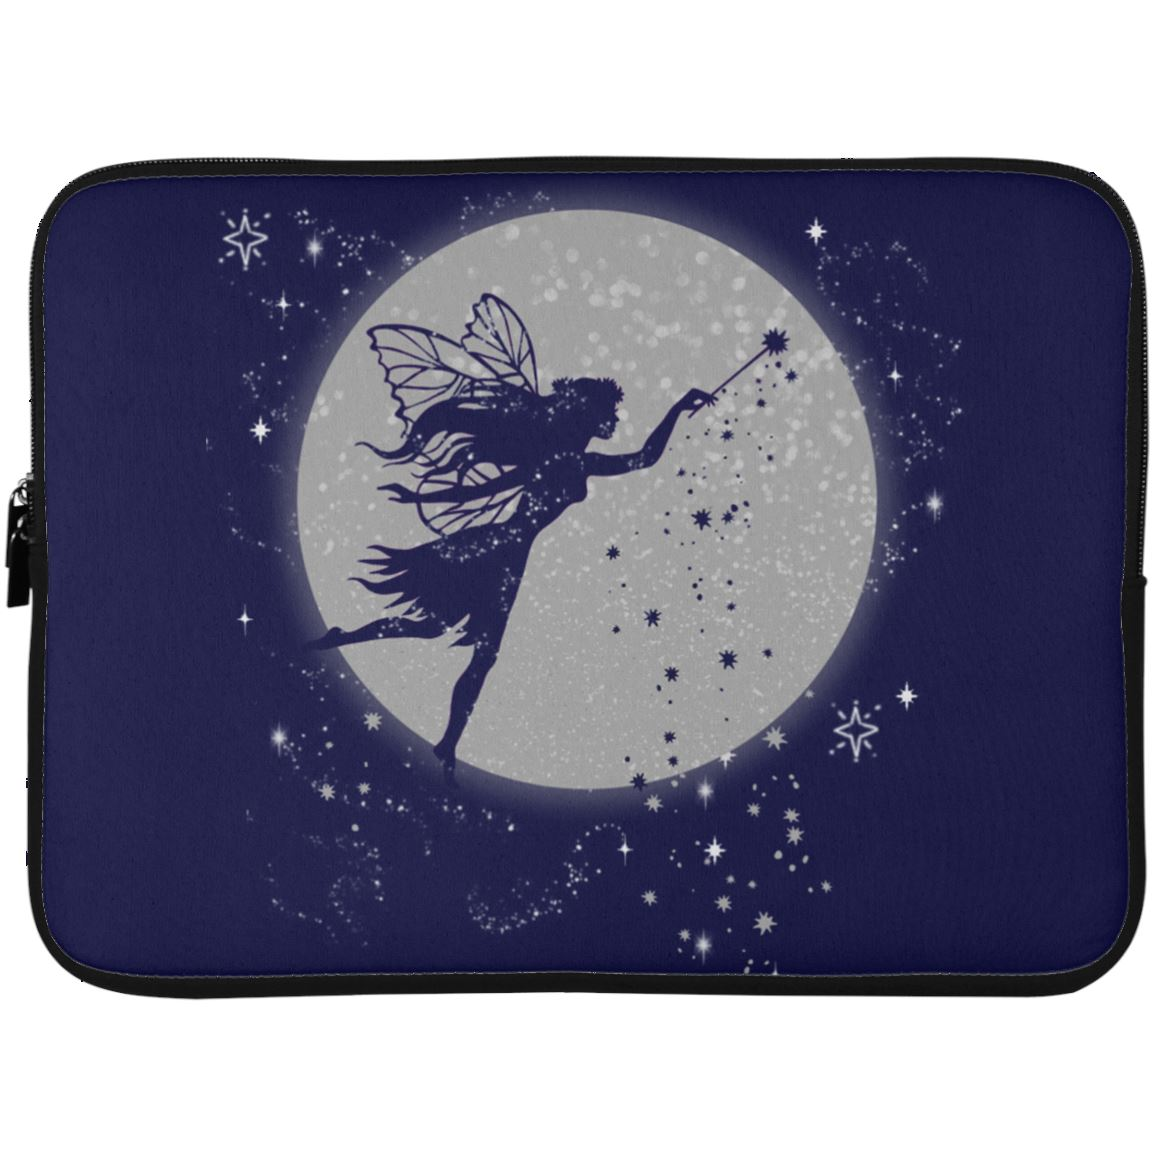 Fairy Moon Laptop Sleeve Apparel Laptop Sleeve - 15 Inch Navy One Size